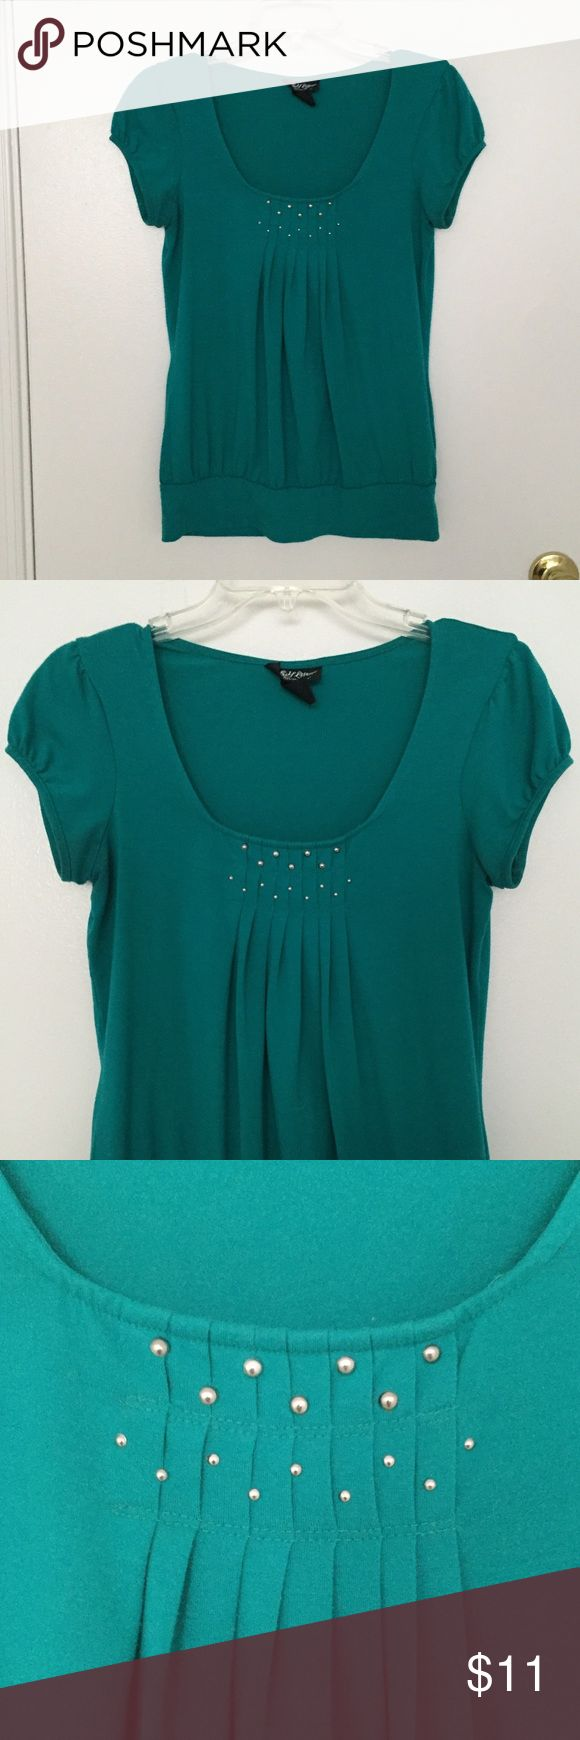 Teal/Green Short-Sleeved Top Teal/Green Short-Sleeved Top; Also listed on Mercari 🛍 Tops